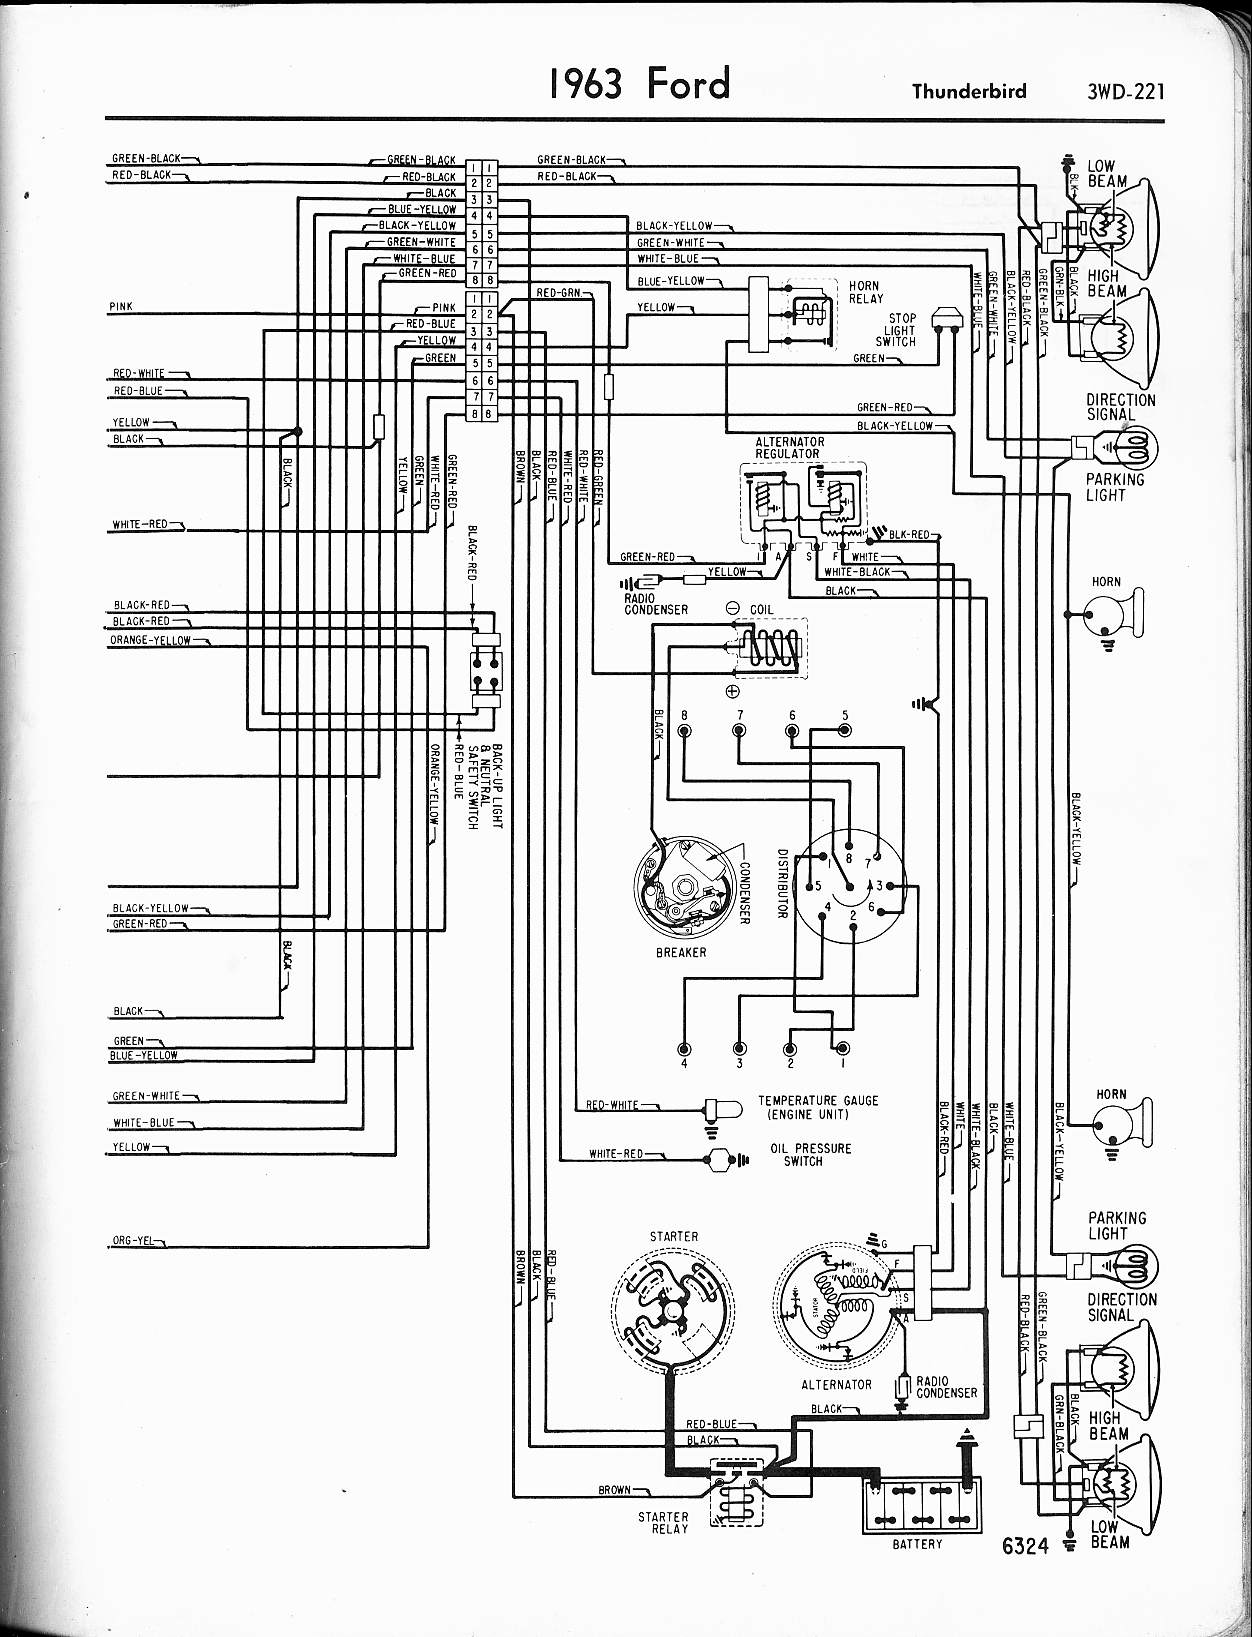 1956 thunderbird wiring schematic just wiring data rh ag skiphire co uk